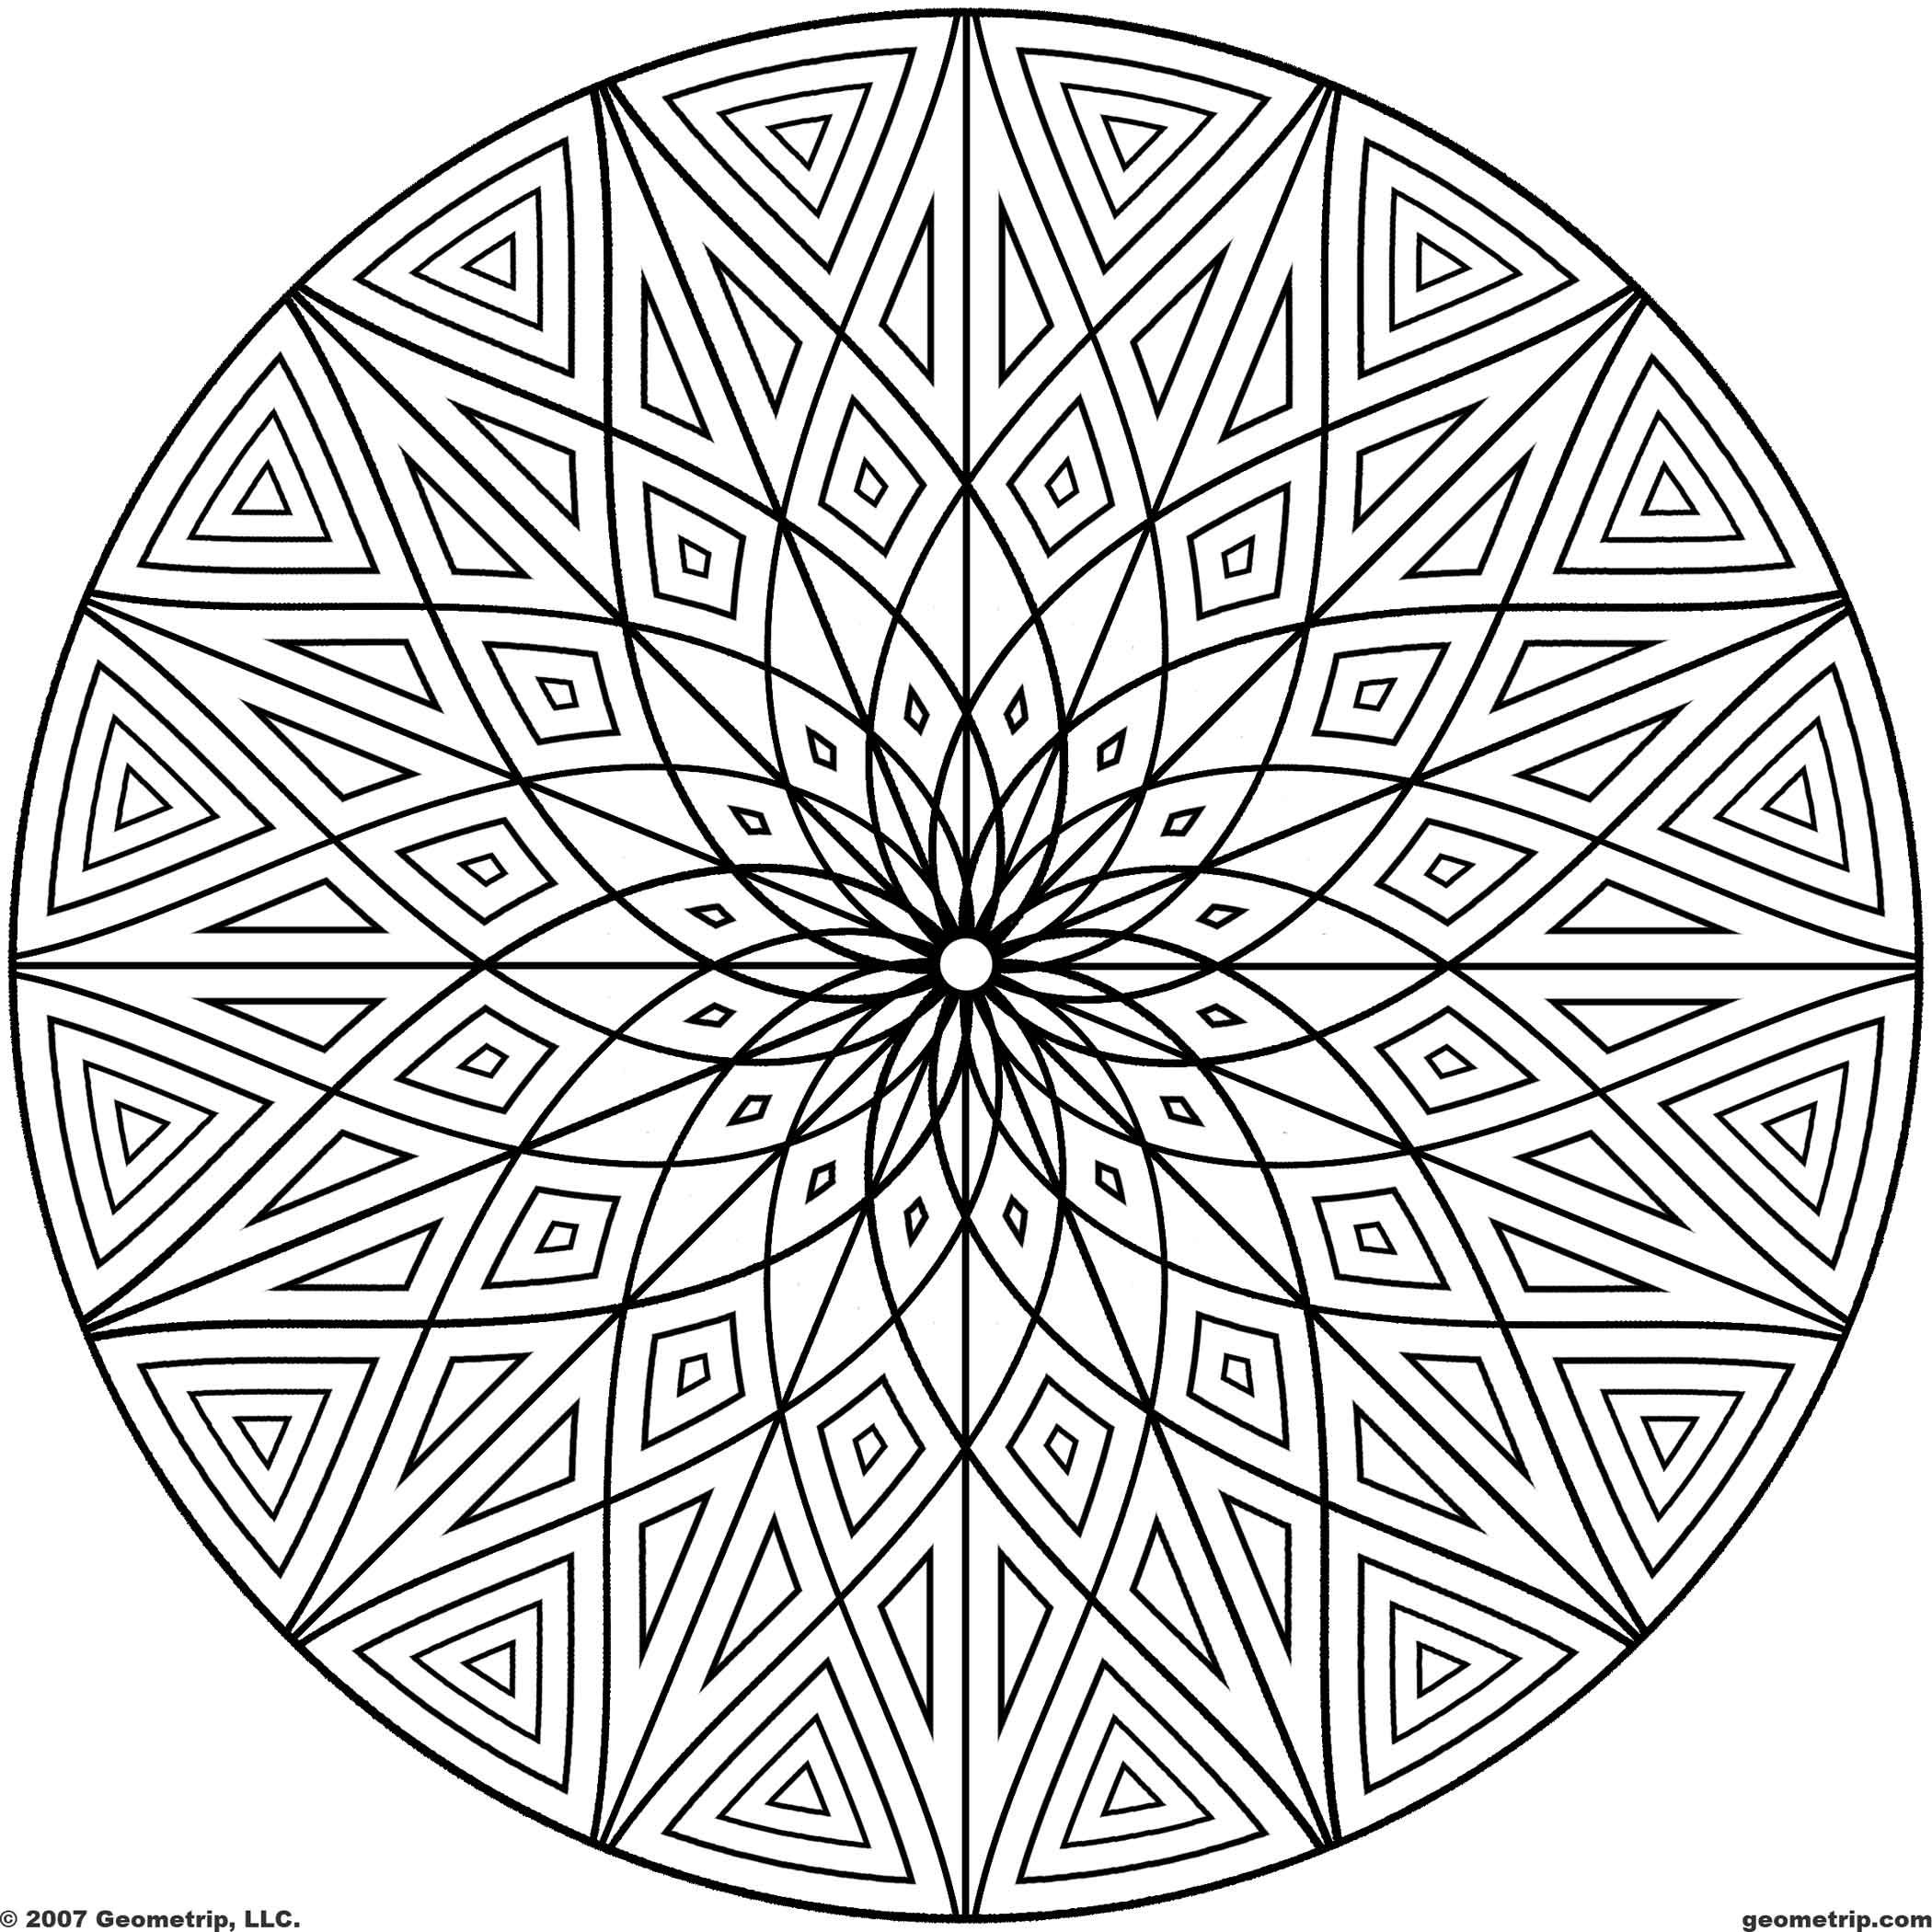 cool coloring designs to print 16 cool coloring pages of designs images cool geometric cool coloring designs print to